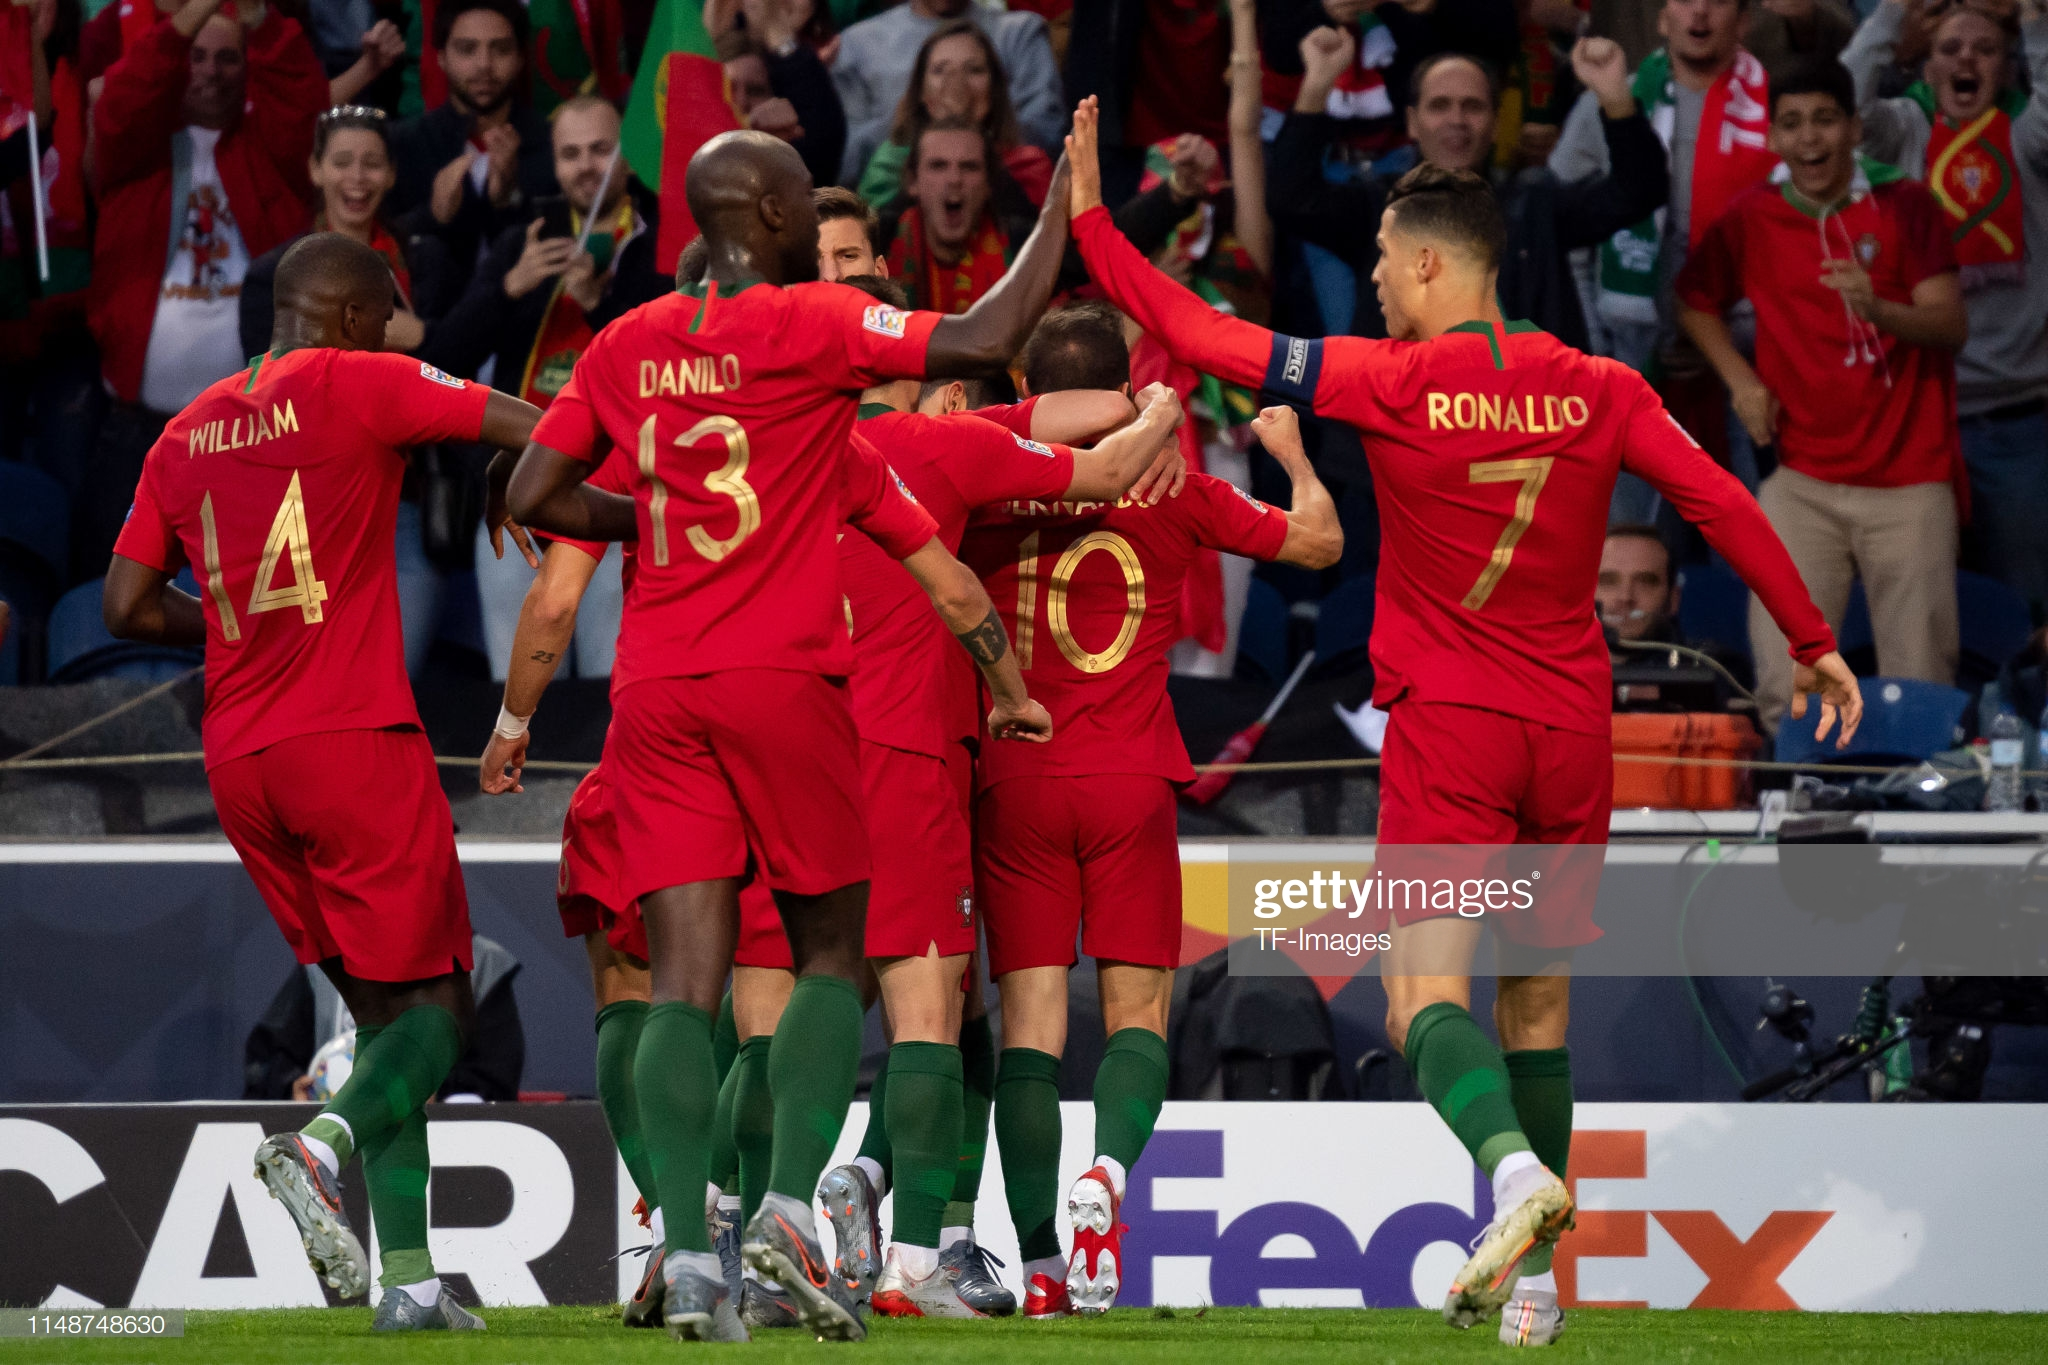 Portugal 1-0 Pays Bas